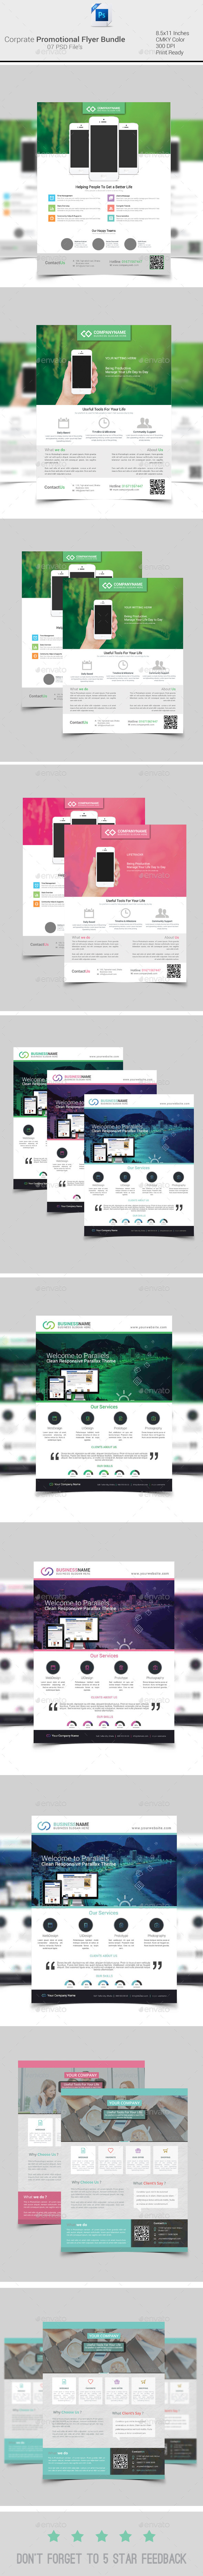 GraphicRiver Corporate Promotion Flyer Bundle 9320397